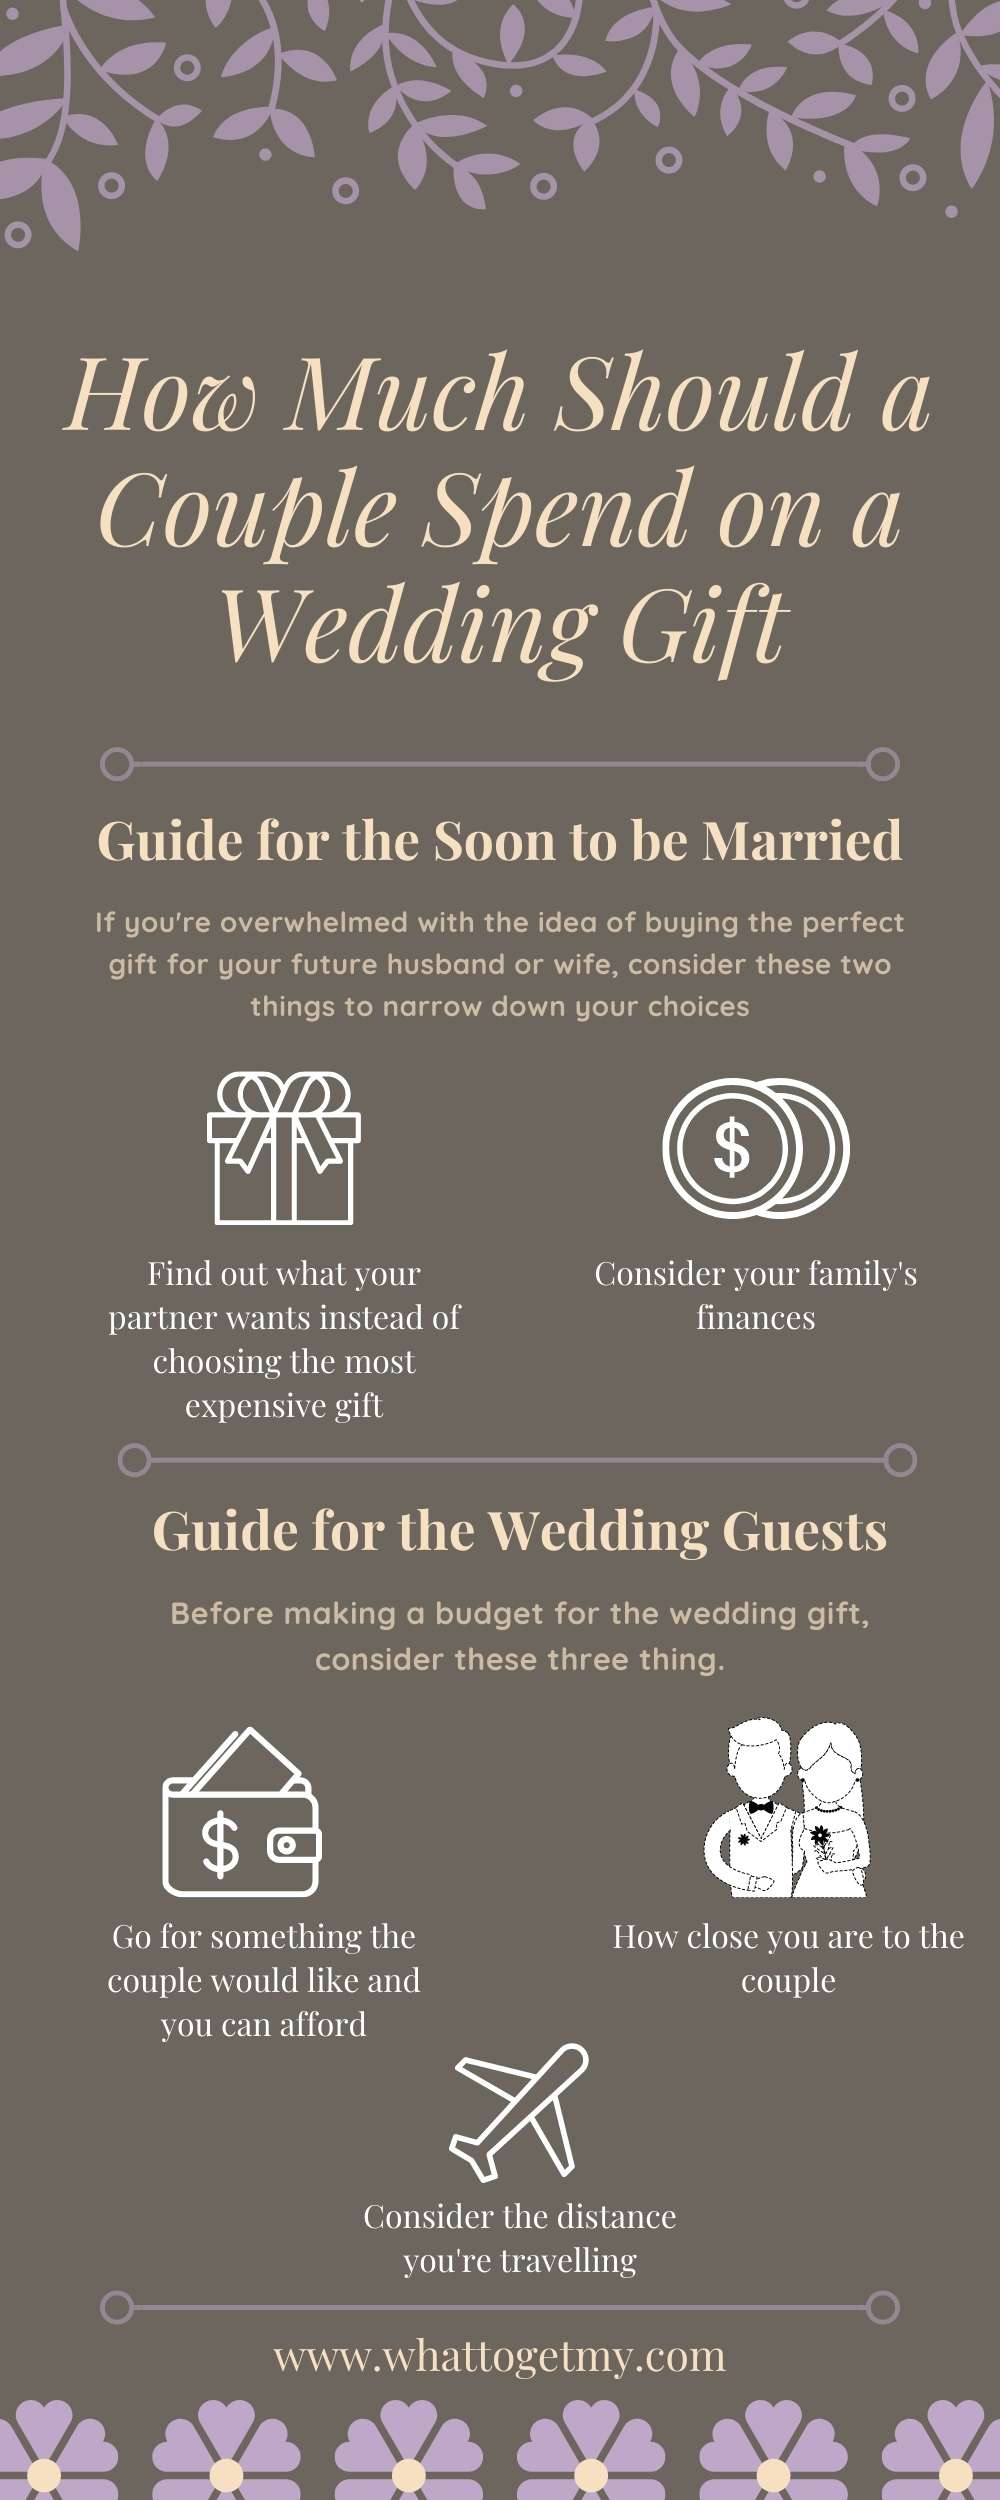 How  Much Should a Couple Spend on a Wedding Gift